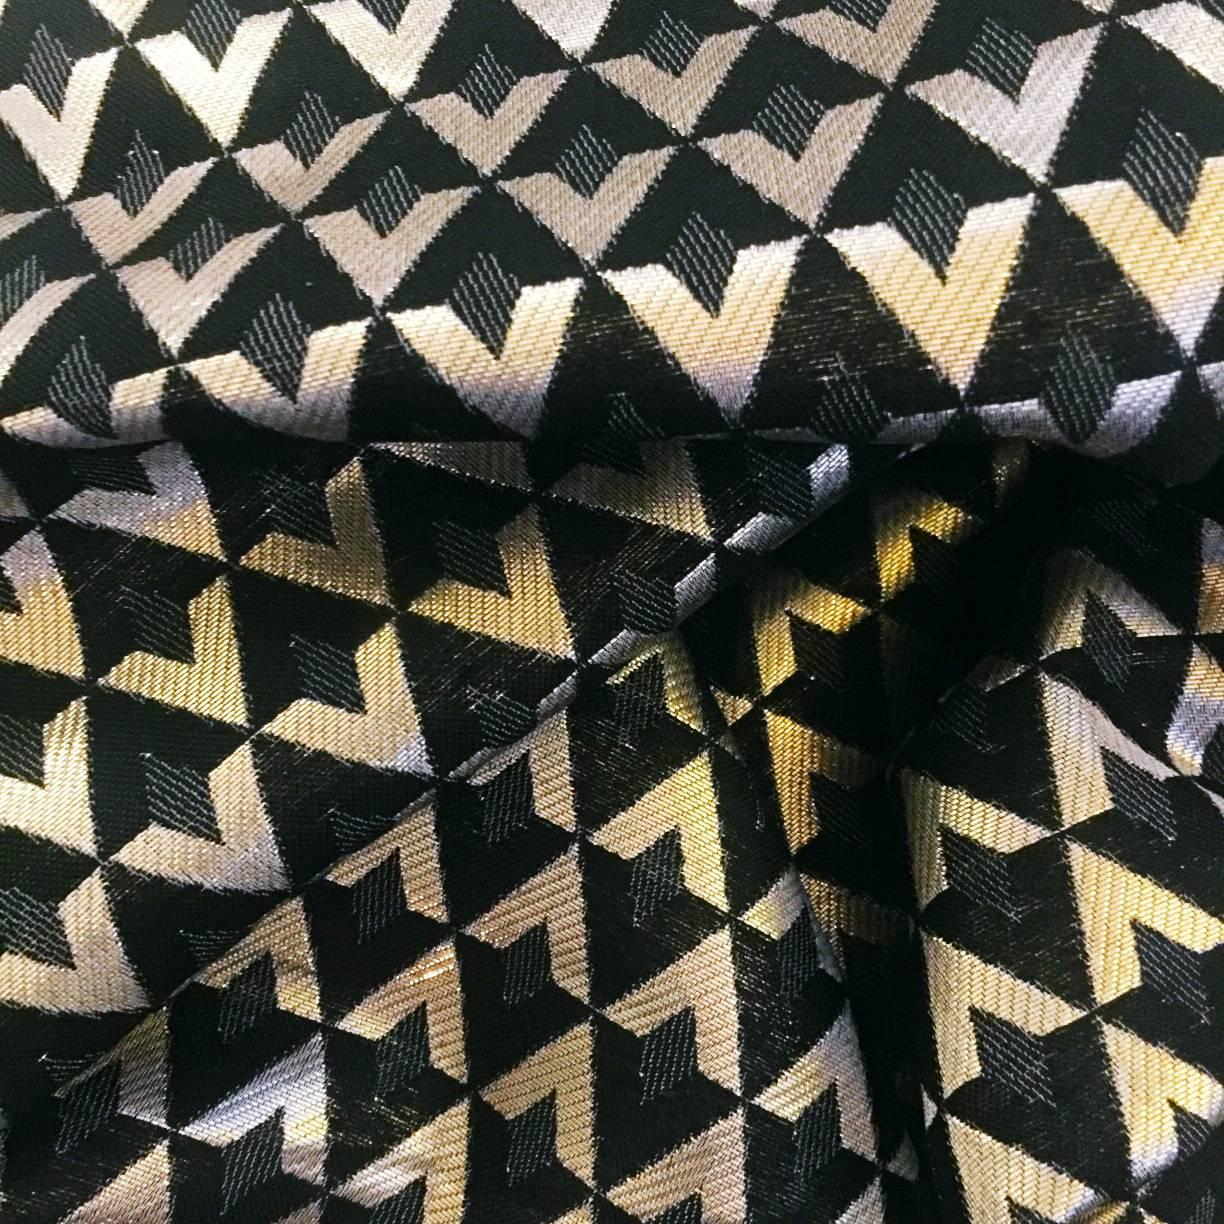 Gold and Black fabric from joann's fabric used in simplicity 1873